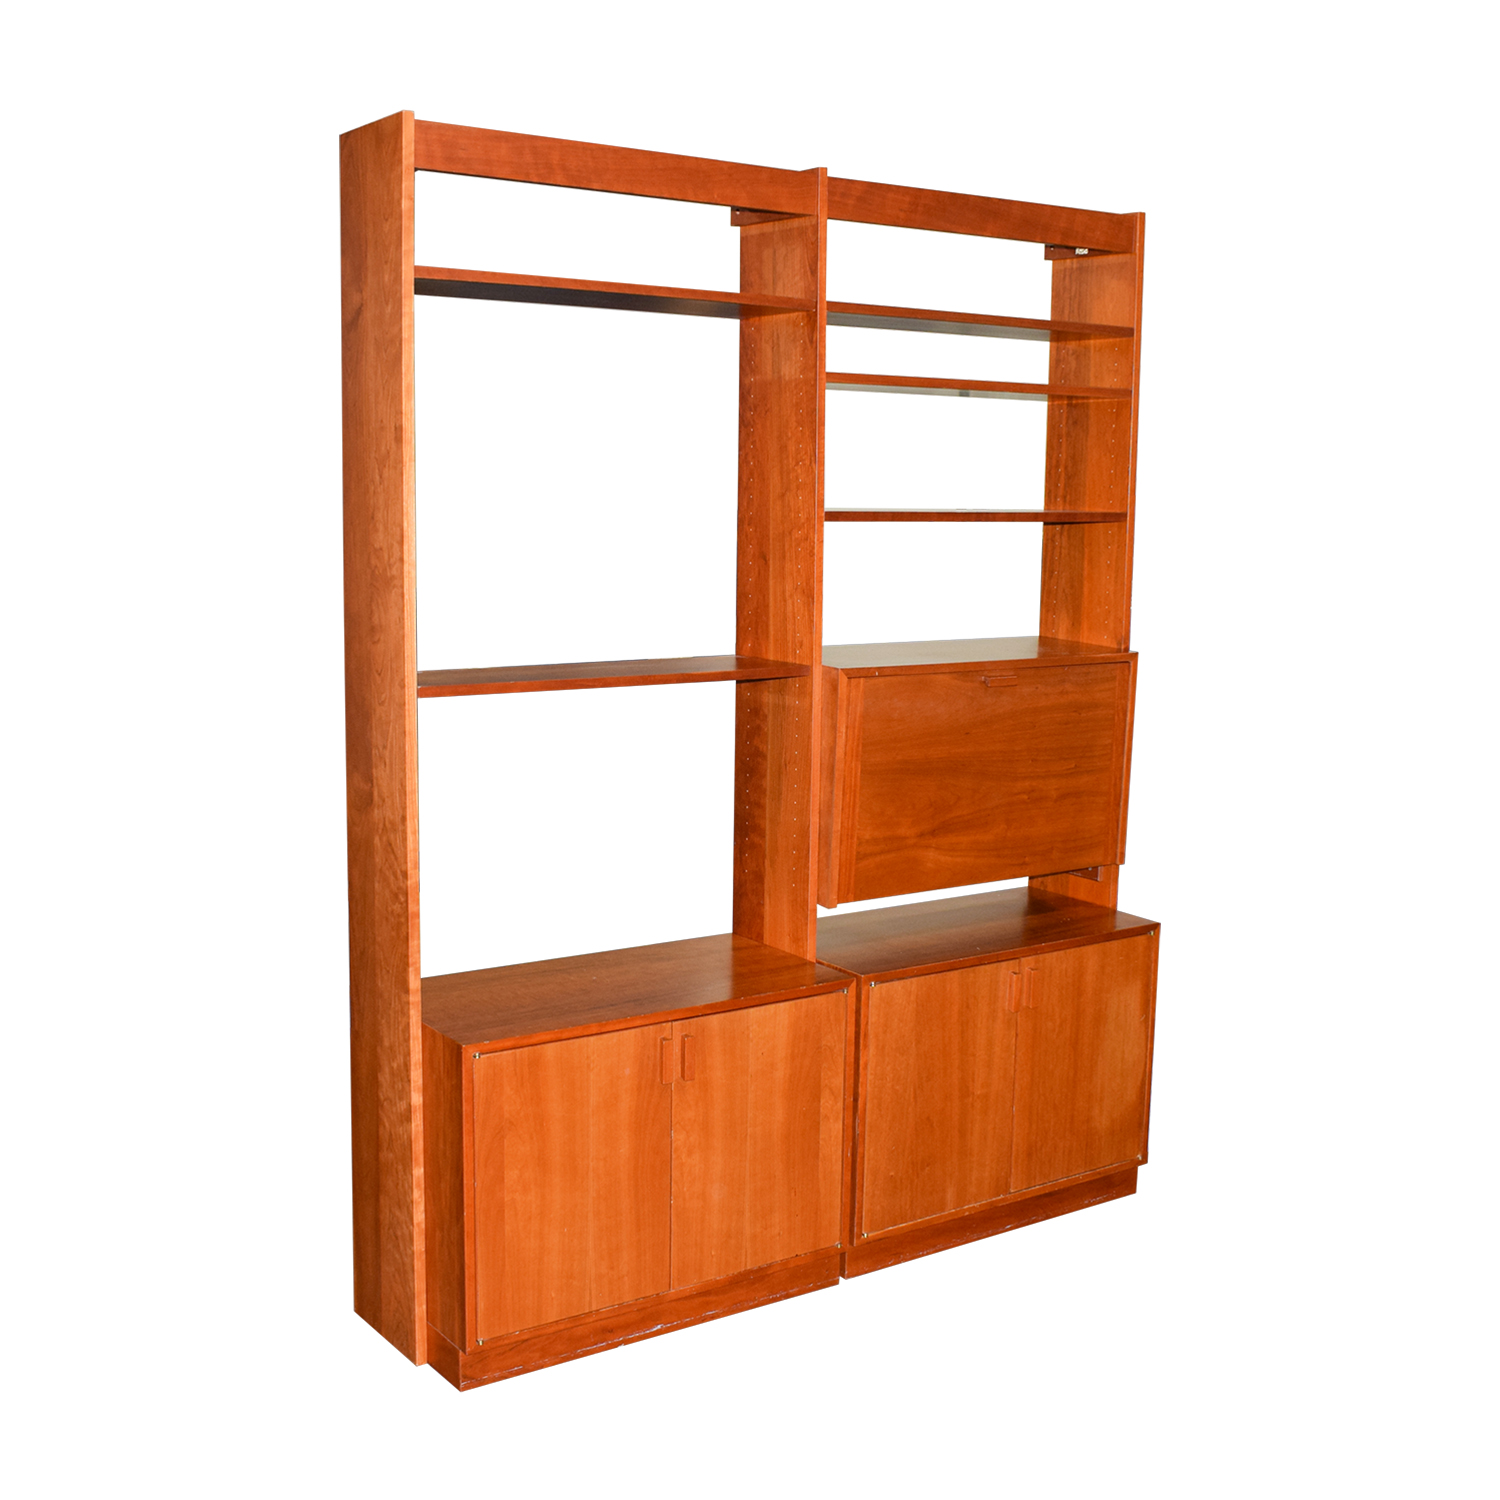 Charles Webb Cherry Wood Bookshelf Wall Unit with Desk sale